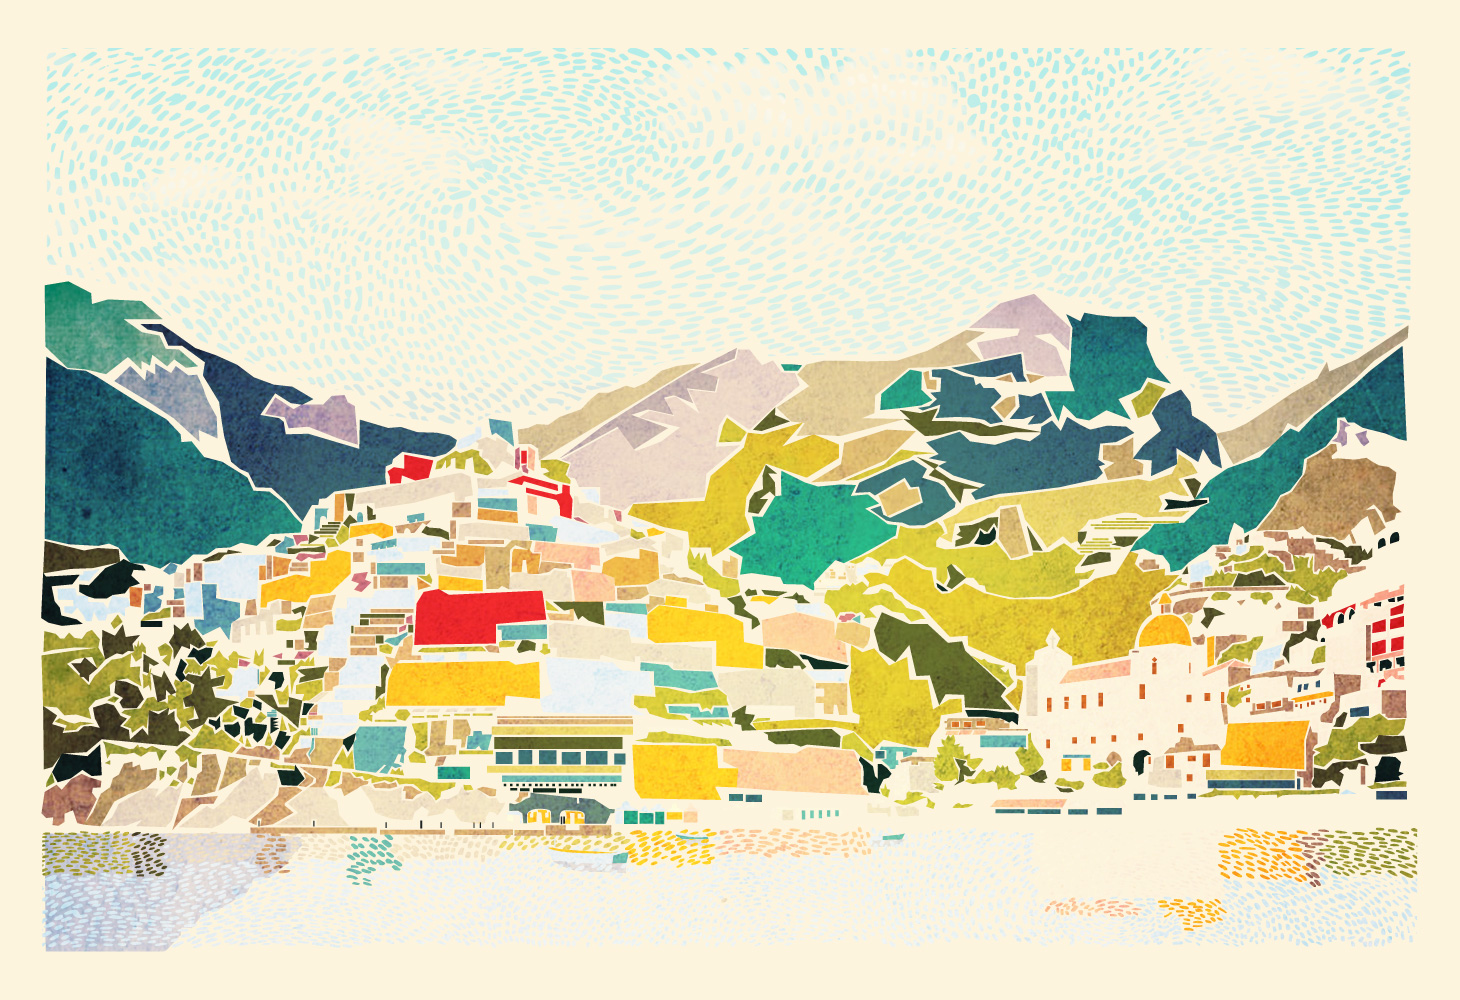 Positano - Illustration - coastal view